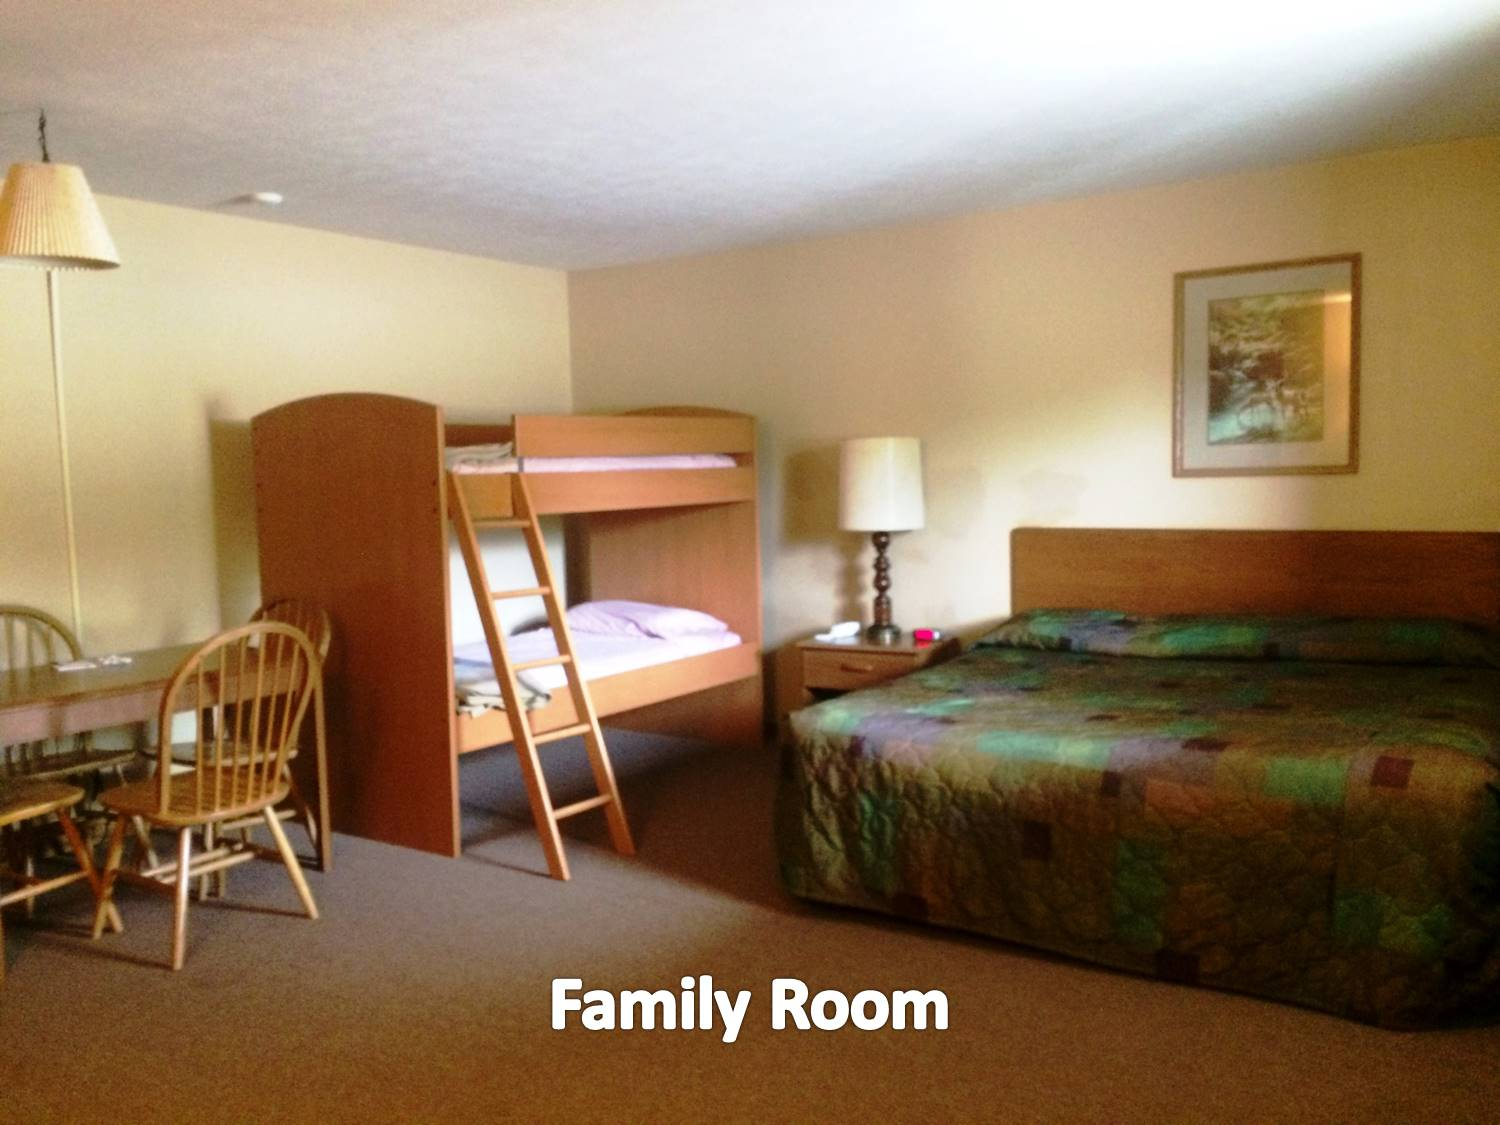 Room with one king bed, a set of bunk beds, plus a pullout sofa, and appropriate furnishings.